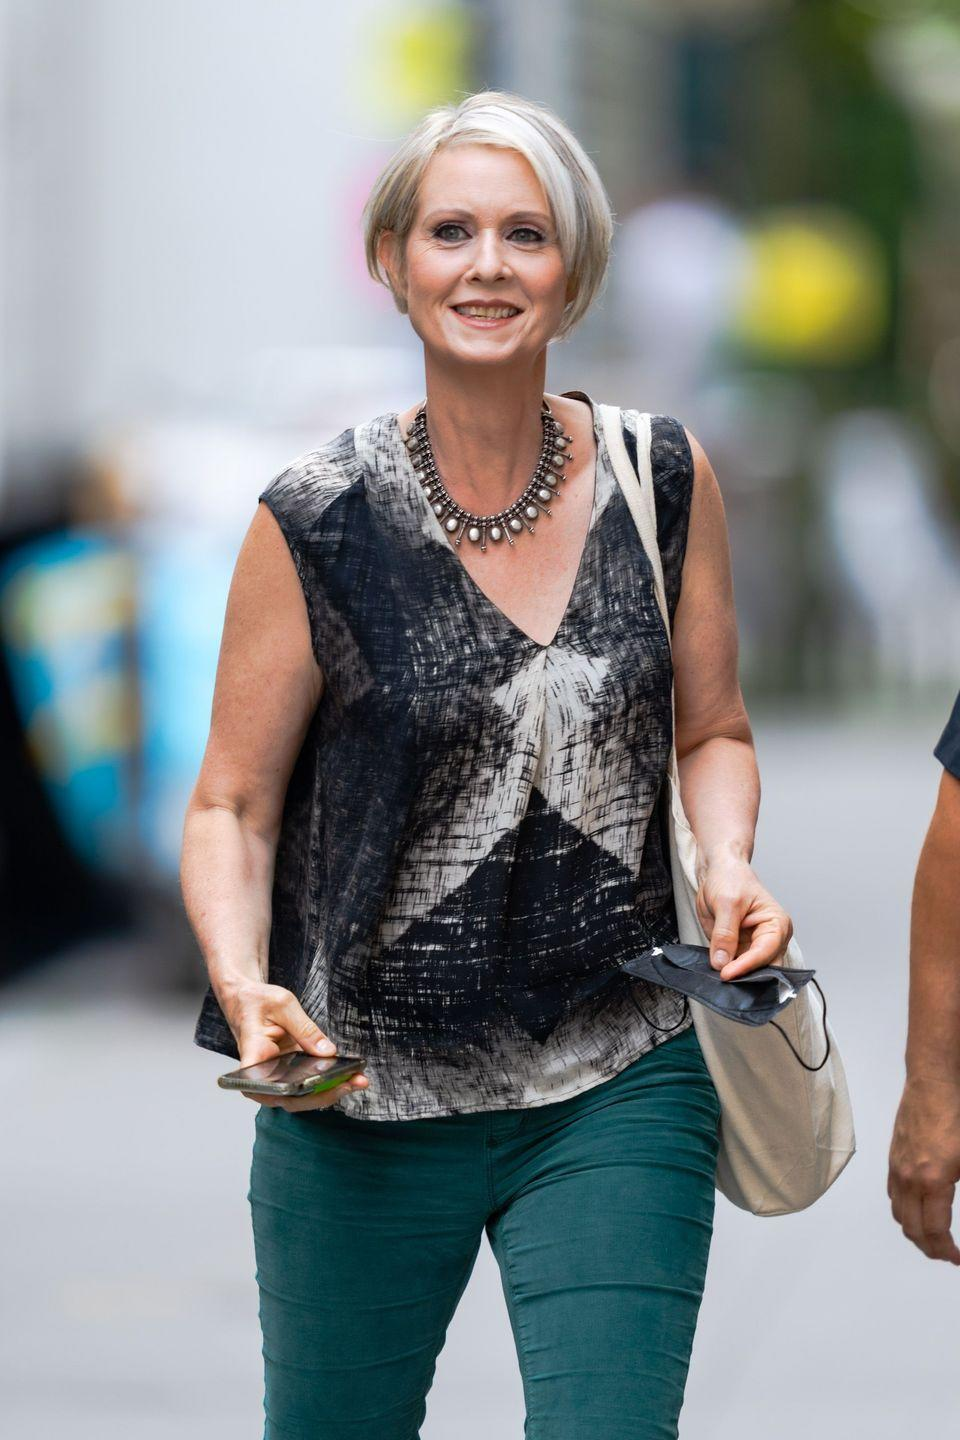 <p>While <strong>Cynthia Nixo</strong><strong>n</strong> became known for her fiery red hair while playing Miranda Hobbes in <em>Sex and the City</em>, the actress is showing how flattering transitioning to gray can be. Pearly streaks paired with gunmetal gray looks sharp, and fall is the perfect time to experiment with transitioning hair. </p>